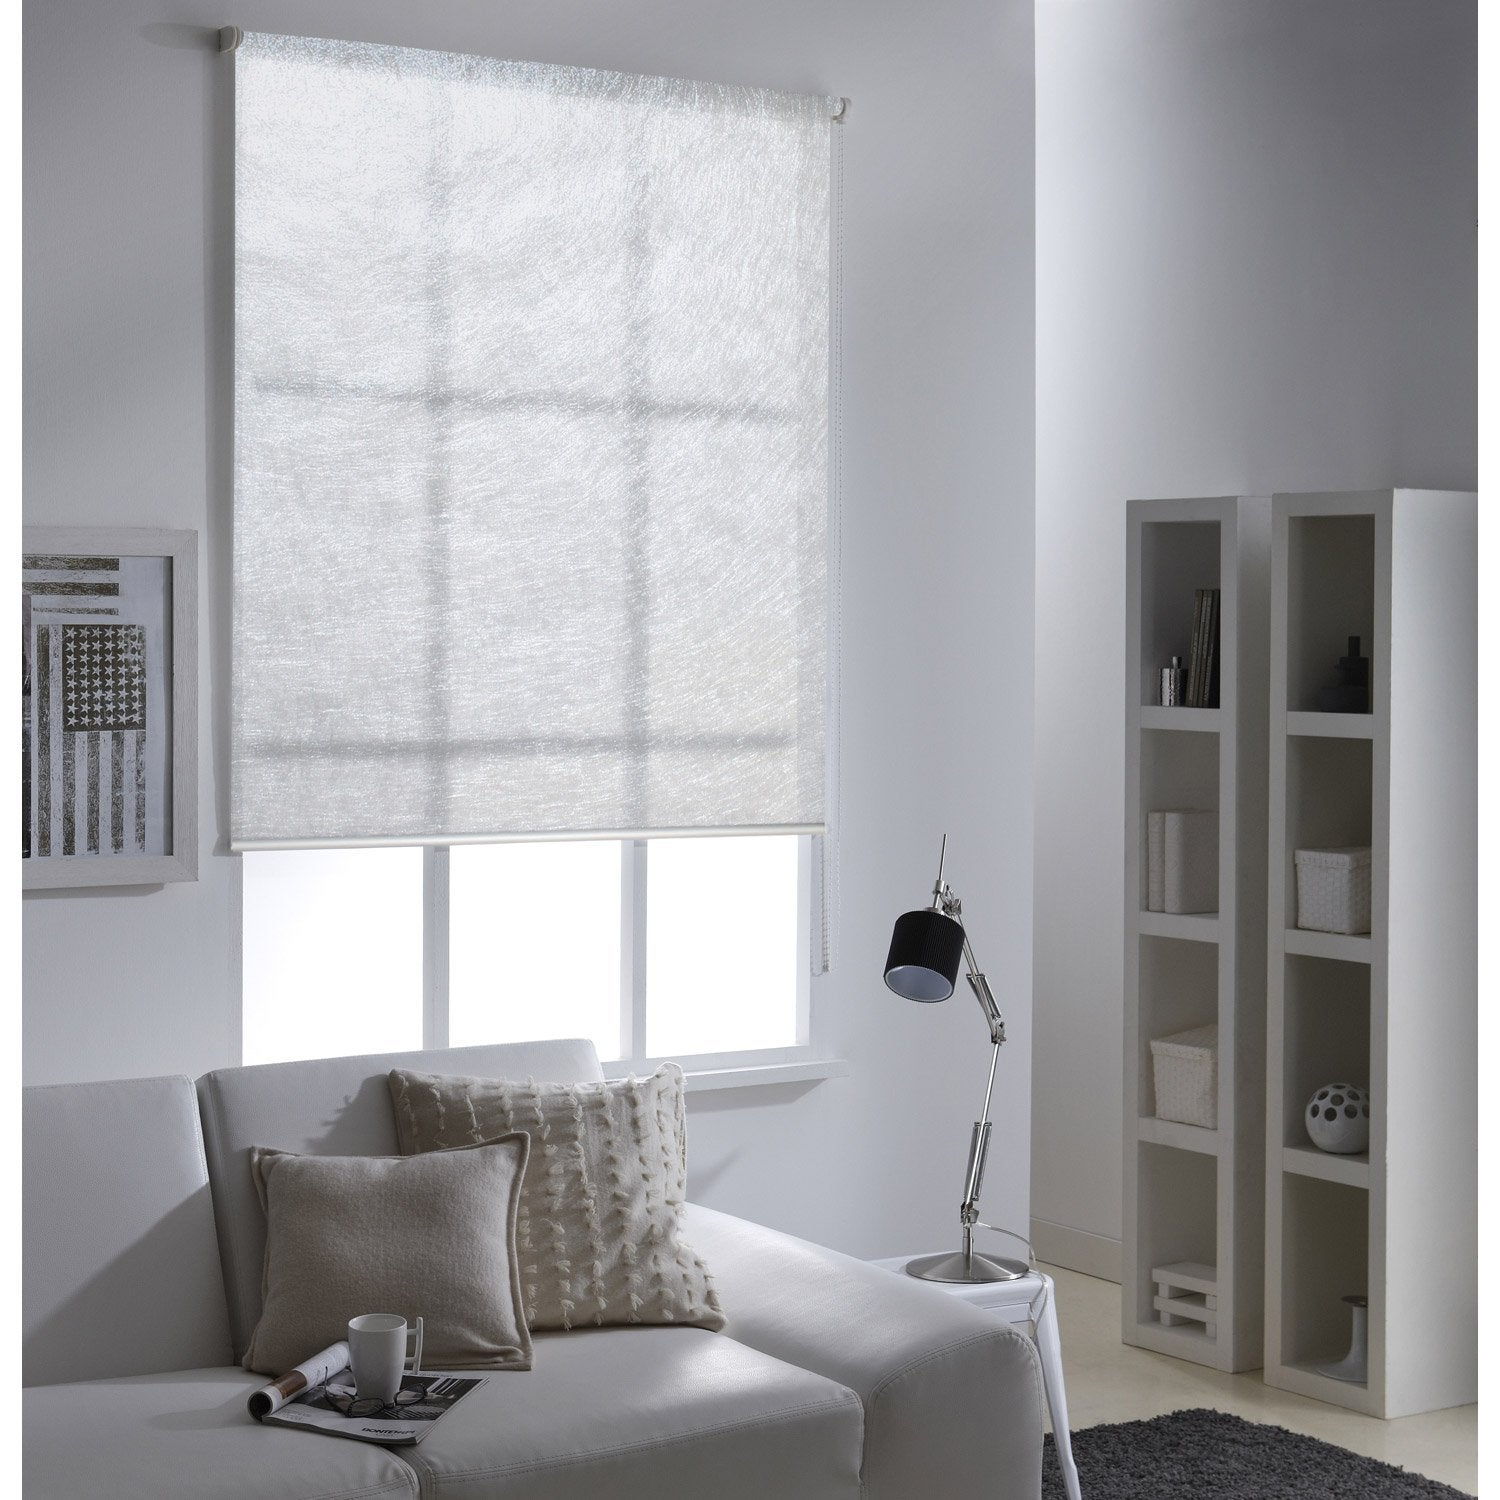 store enrouleur tamisant frost blanc 155x190 cm leroy merlin. Black Bedroom Furniture Sets. Home Design Ideas